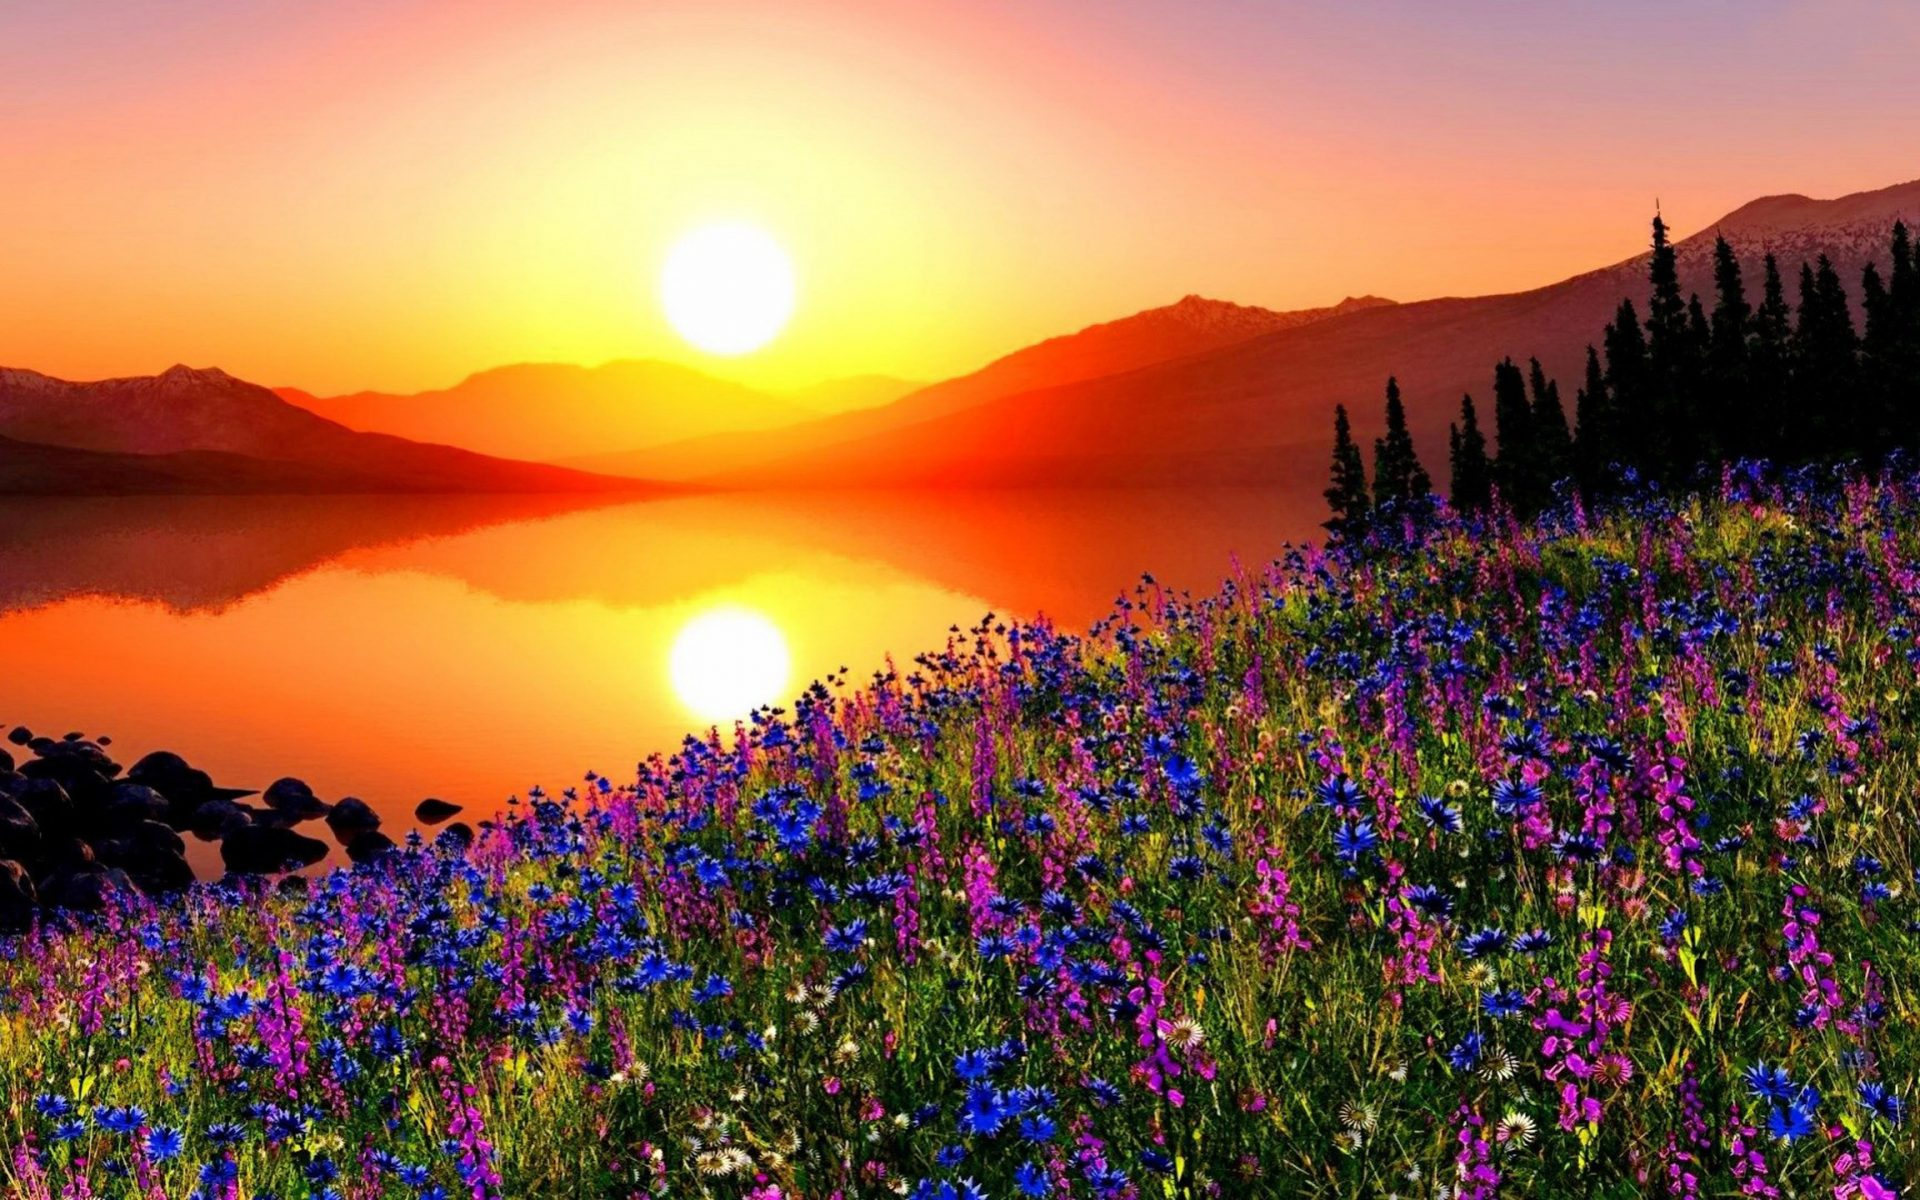 Mountain Flowers at Sunset